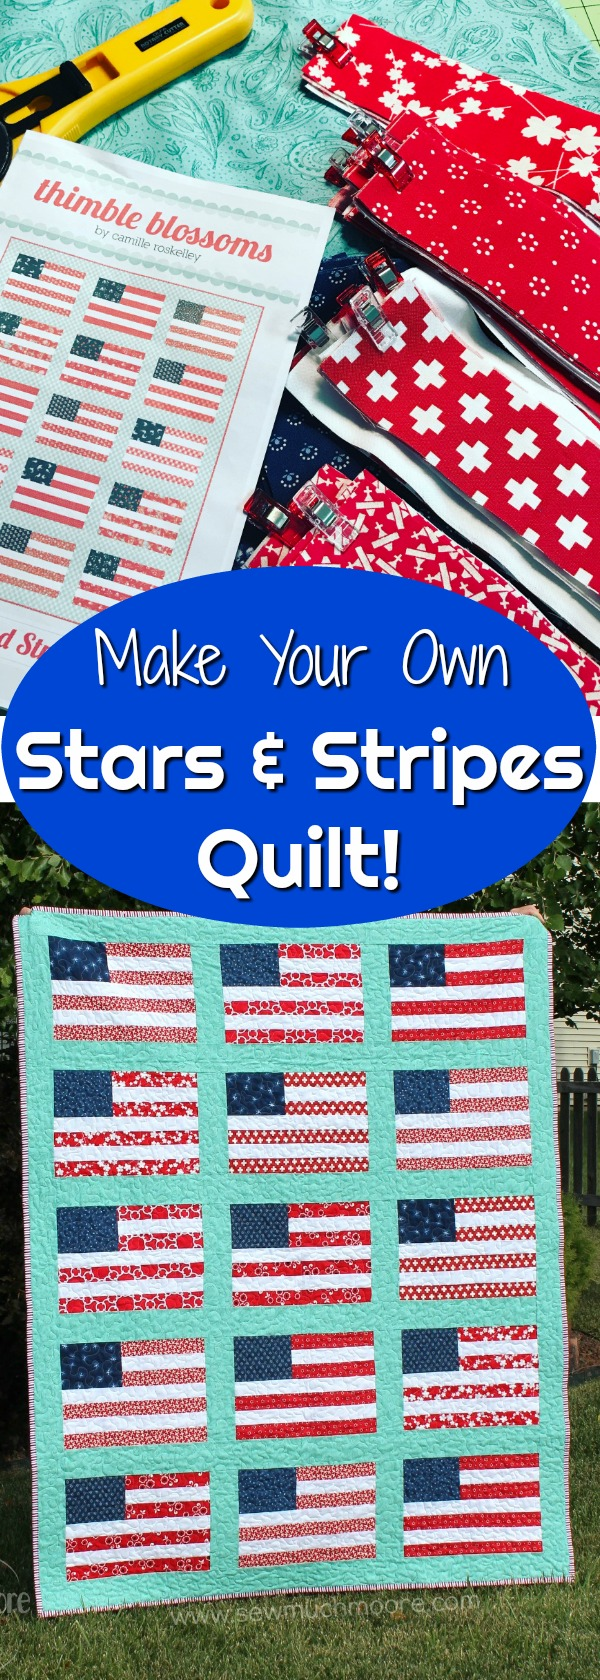 Stars and Stripes Quilt Pinterest Pin 1